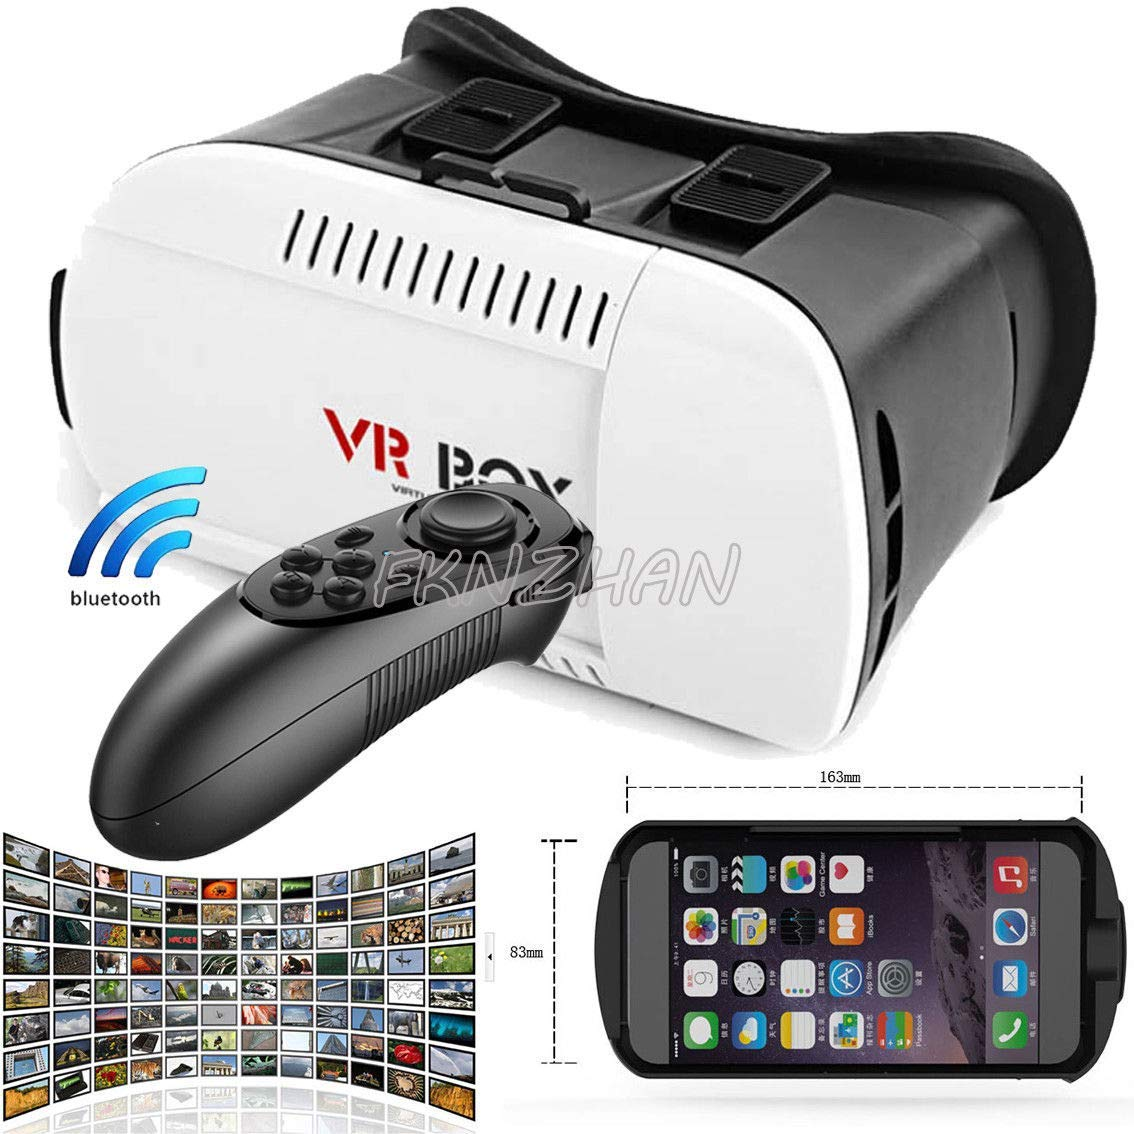 71b72d5f66c Get Quotations · Mocei VR Virtual Reality Headset 3D Glasses + Controller  for Cell Phone iPhone Samsung for LG